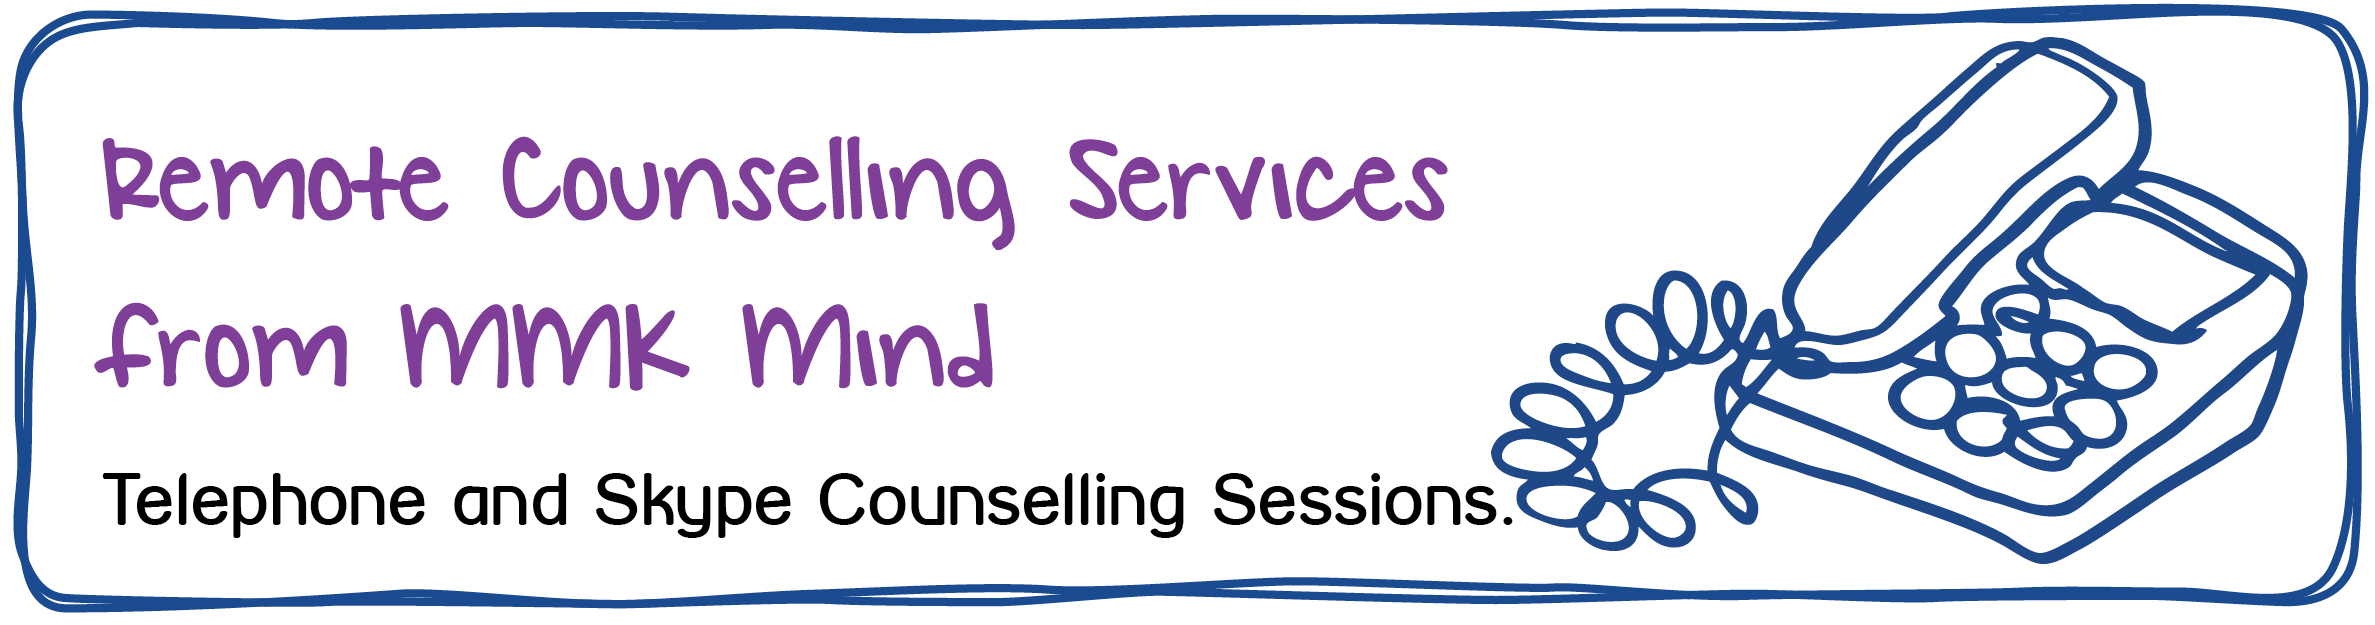 Remote Counselling Services from MMK Mind - Telephone and Skype Counselling Sessions.